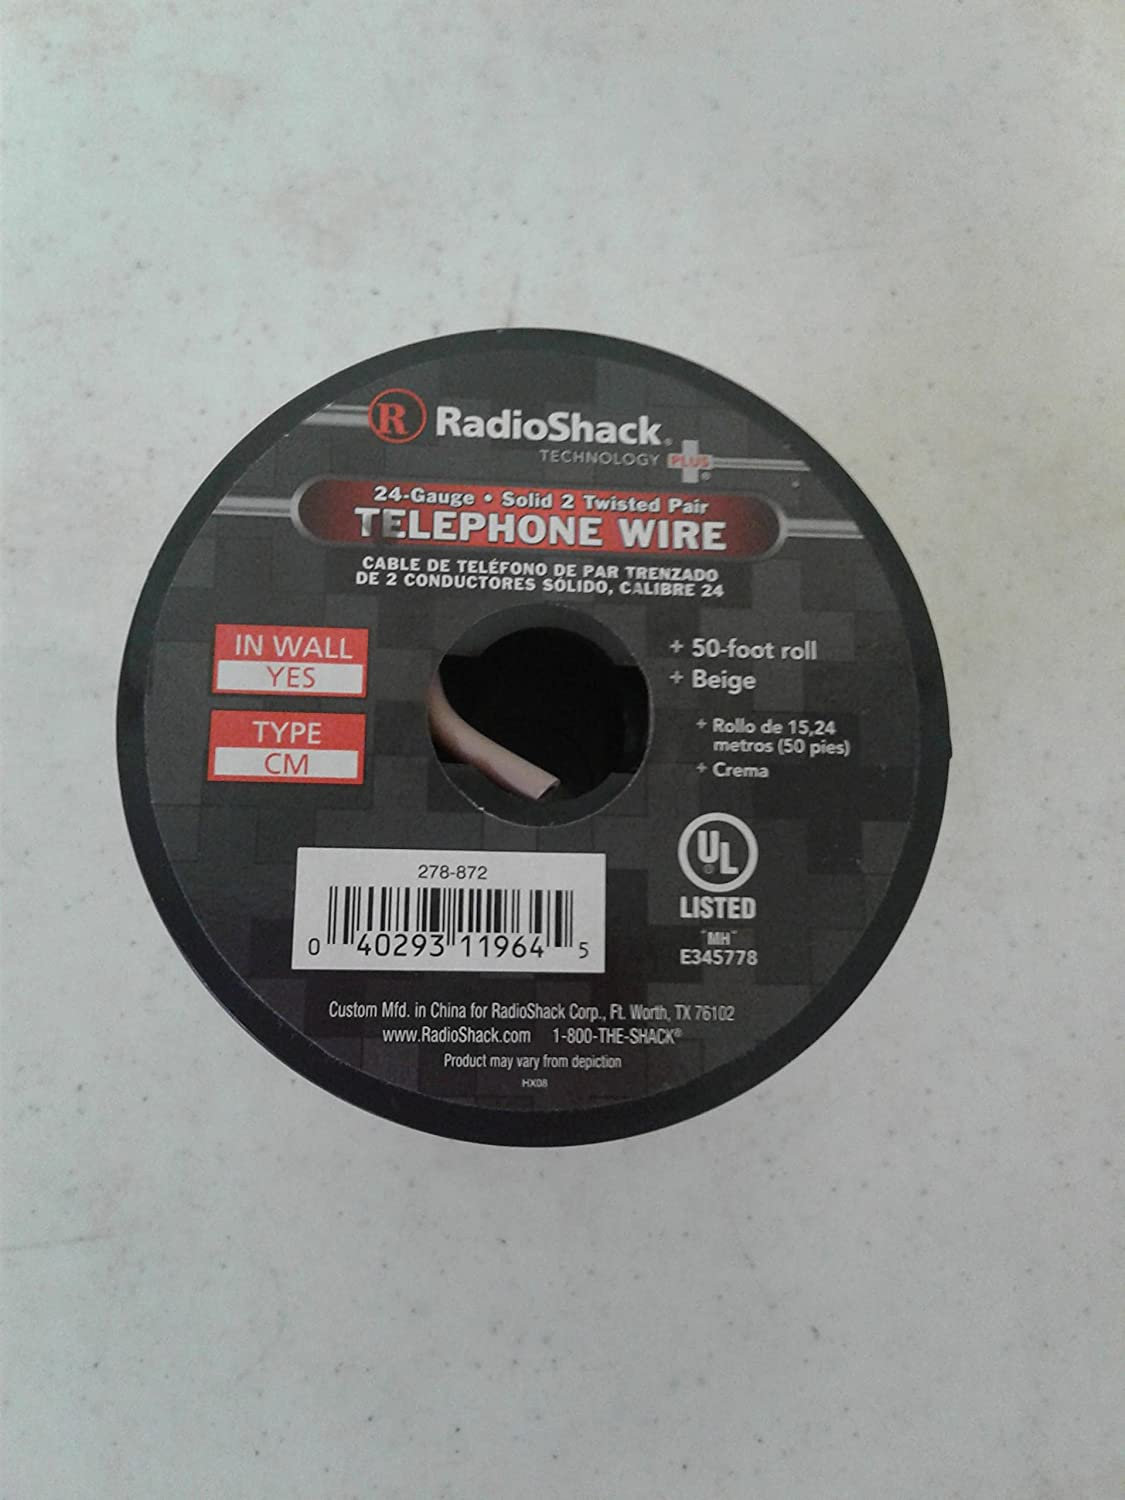 Amazon.com: 24-Gauge Solid 2 Twisted Pair Telephone Wire: Electronics